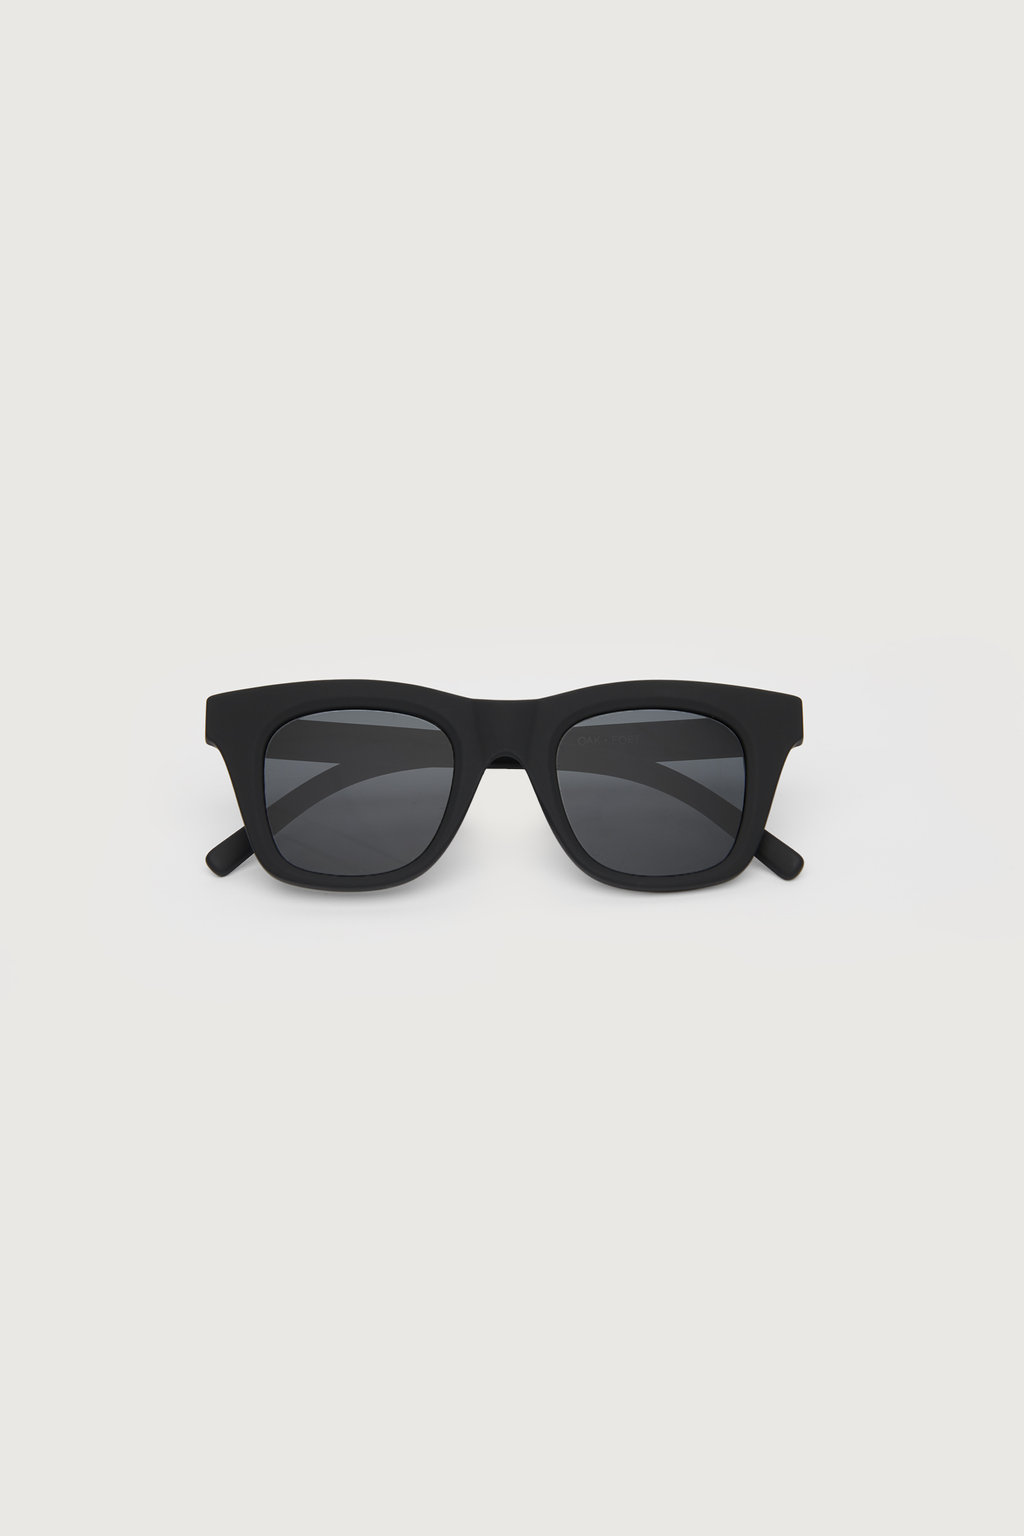 Sunglass 3371 Black 1